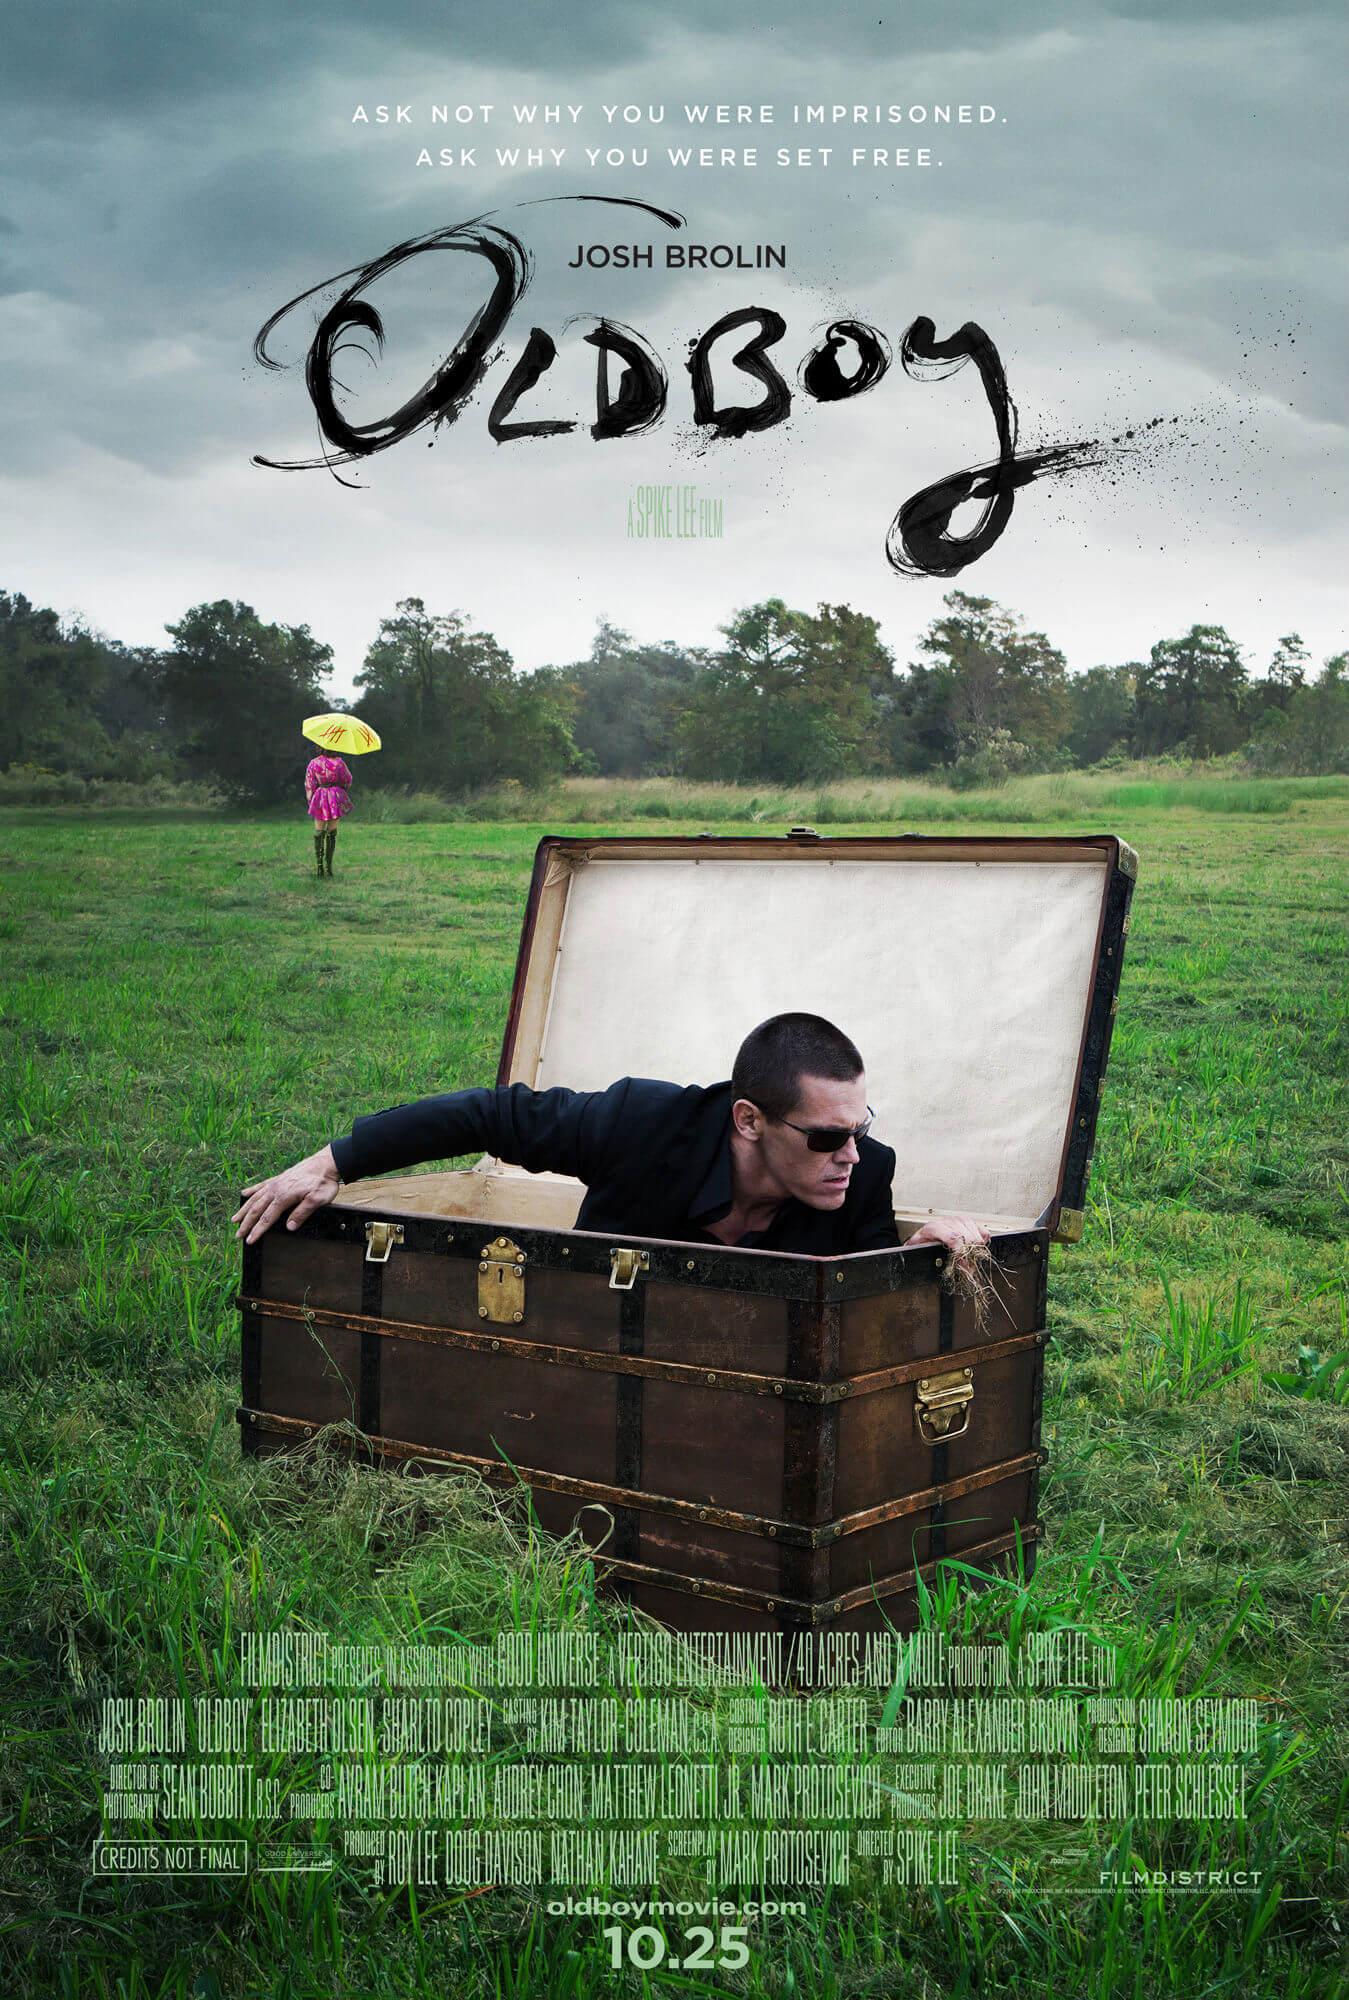 spike lee's oldboy poster